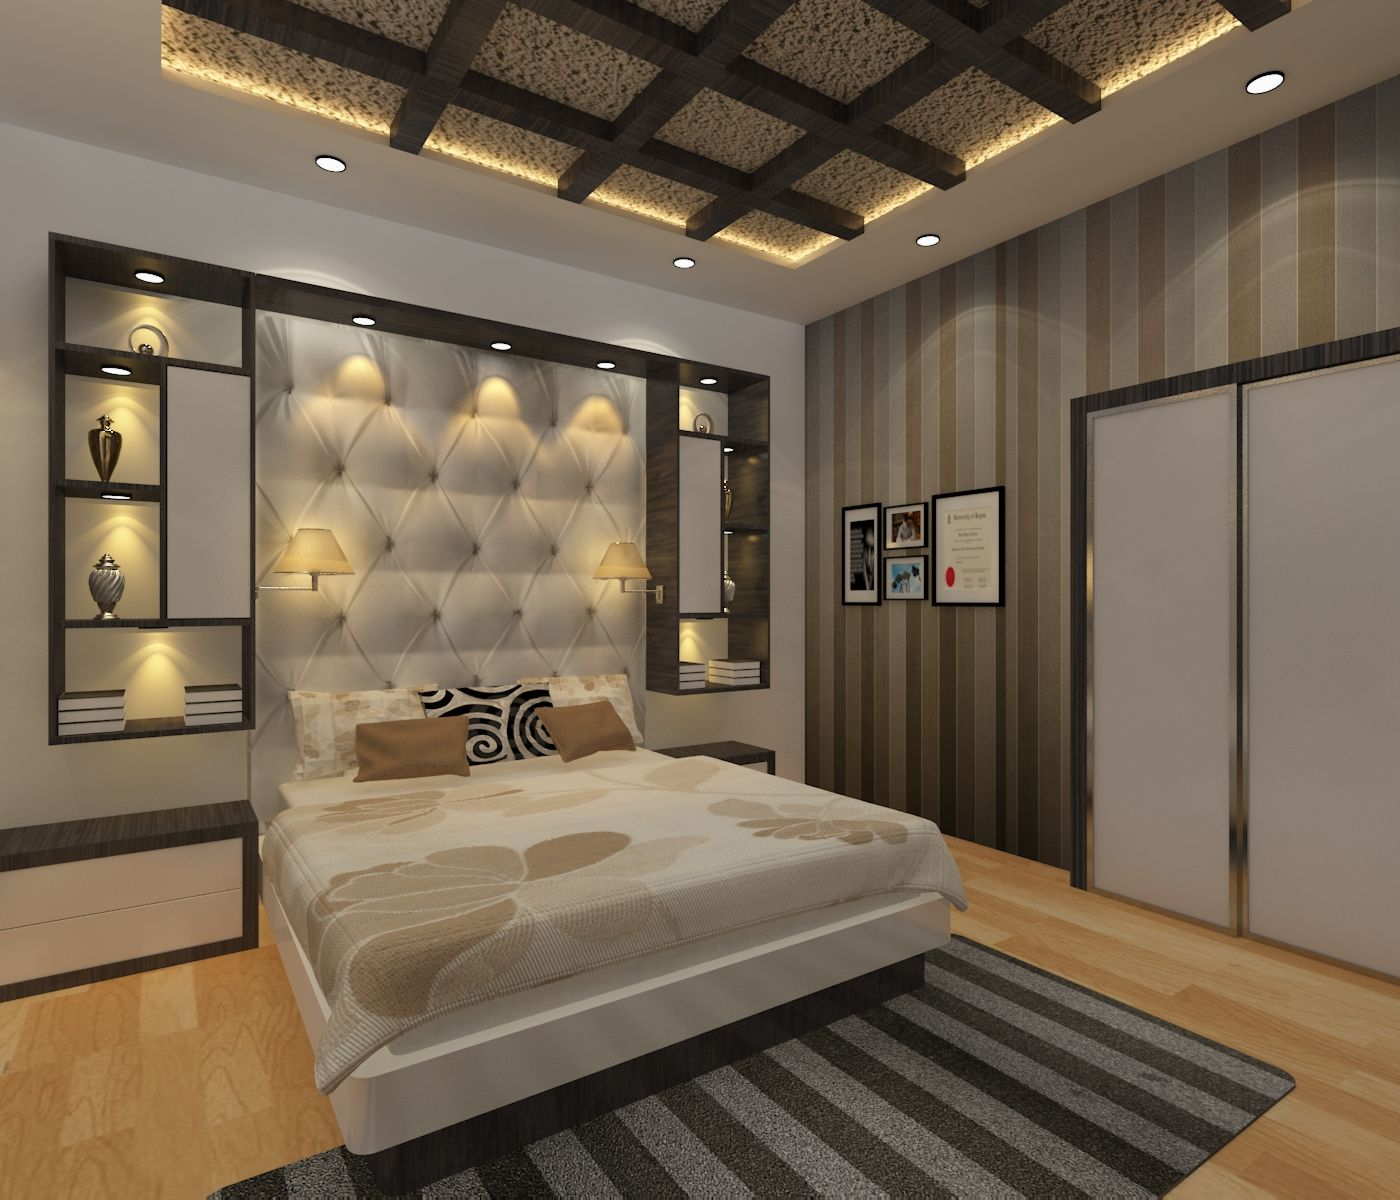 Luxury Bedroom With Elements Bedroom , Bed, Cover, Ceiling